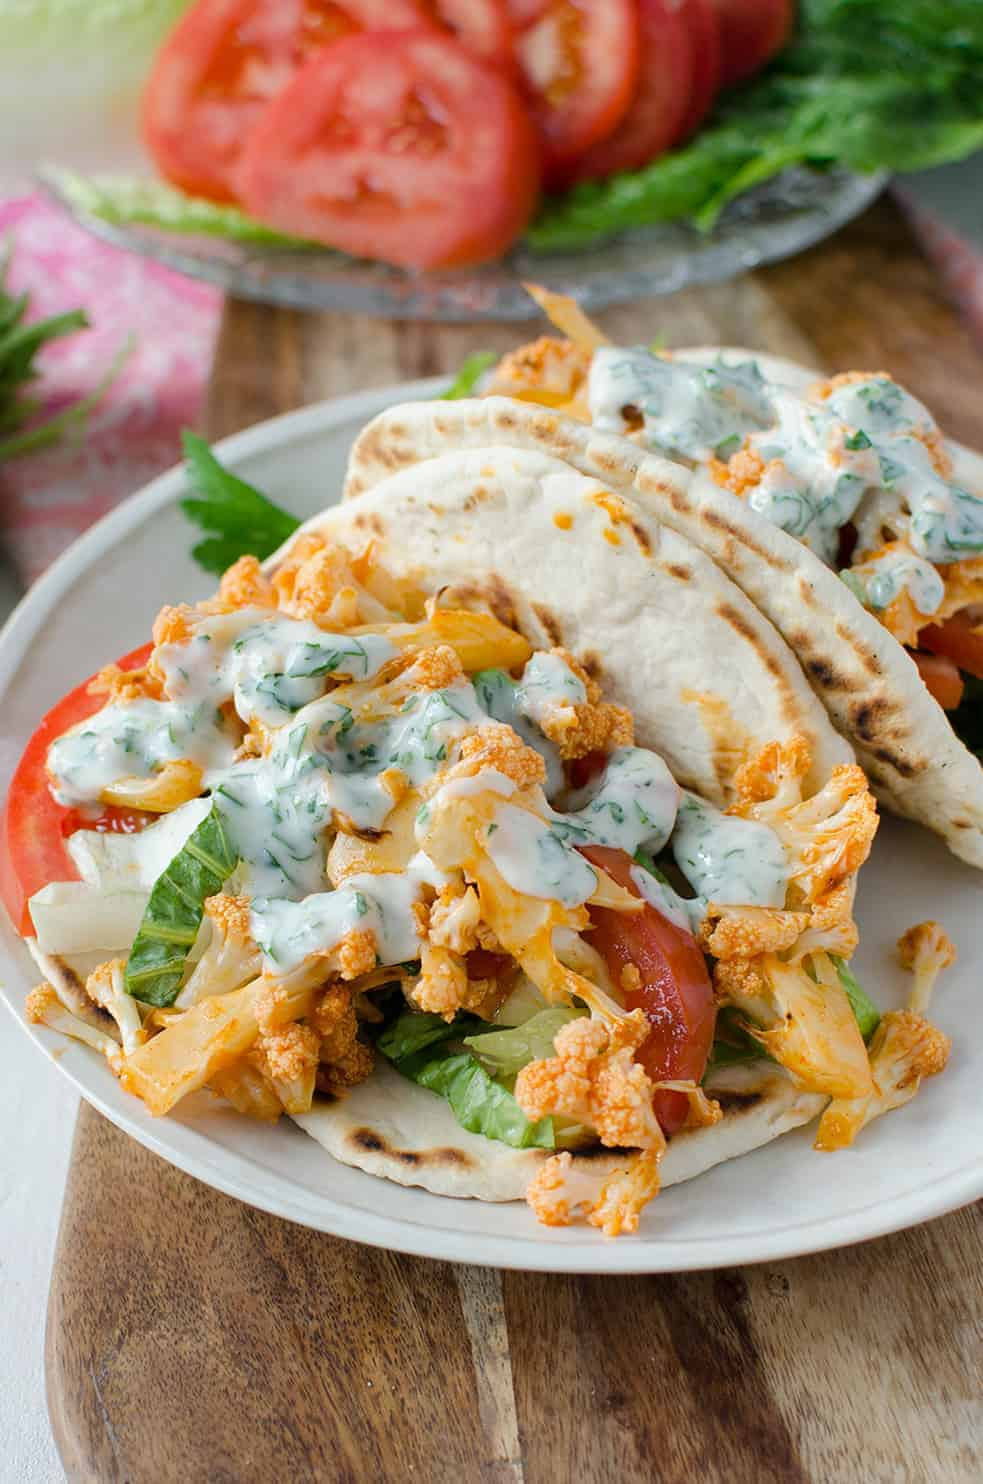 Buffalo Cauliflower Flatbreads! These vegan sandwiches are packed with so much flavor! Roasted buffalo cauliflower on homemade flatbreads. Topped with a simple dairy-free ranch dressing.   www.delishknowledge.com